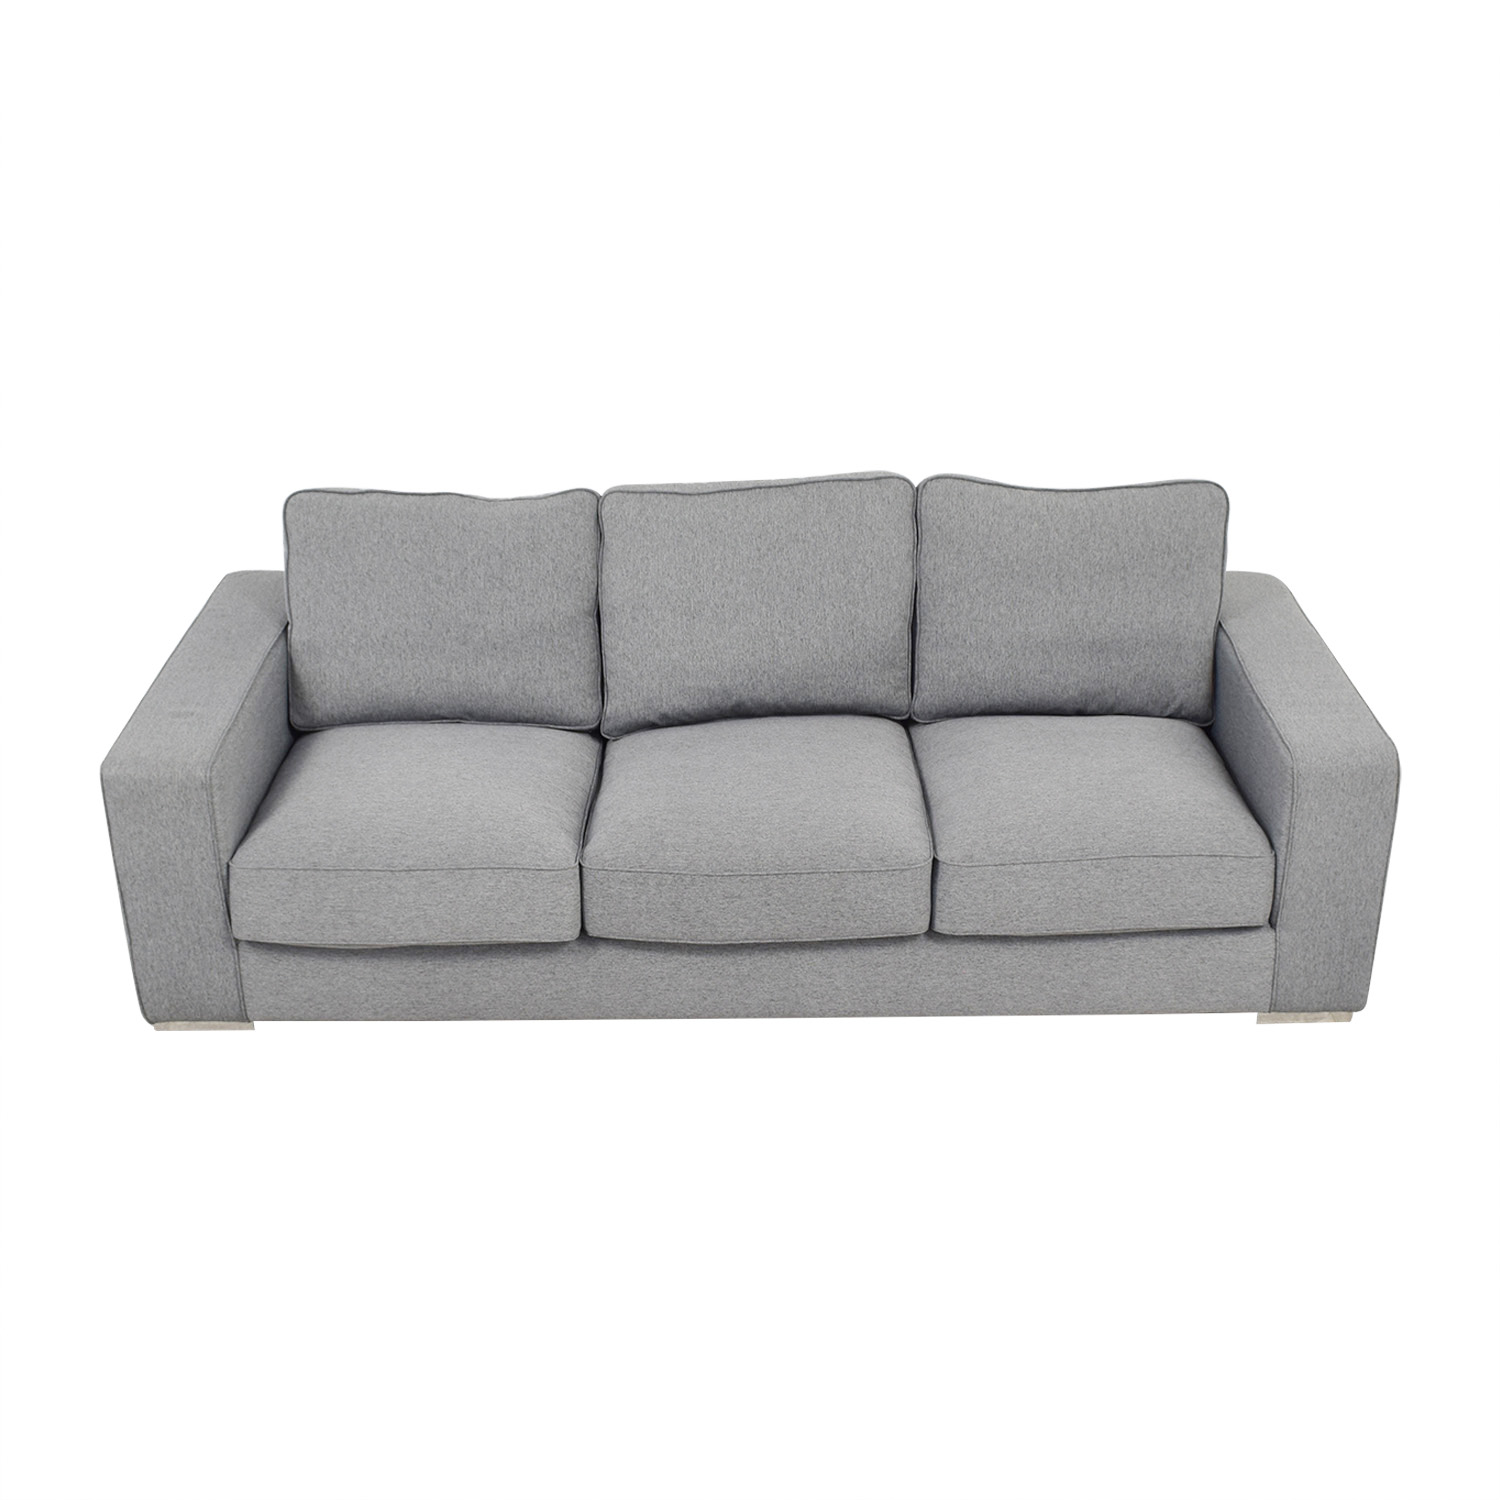 Interior Define Ainsley Grey Three-Cushion Sofa Interior Define